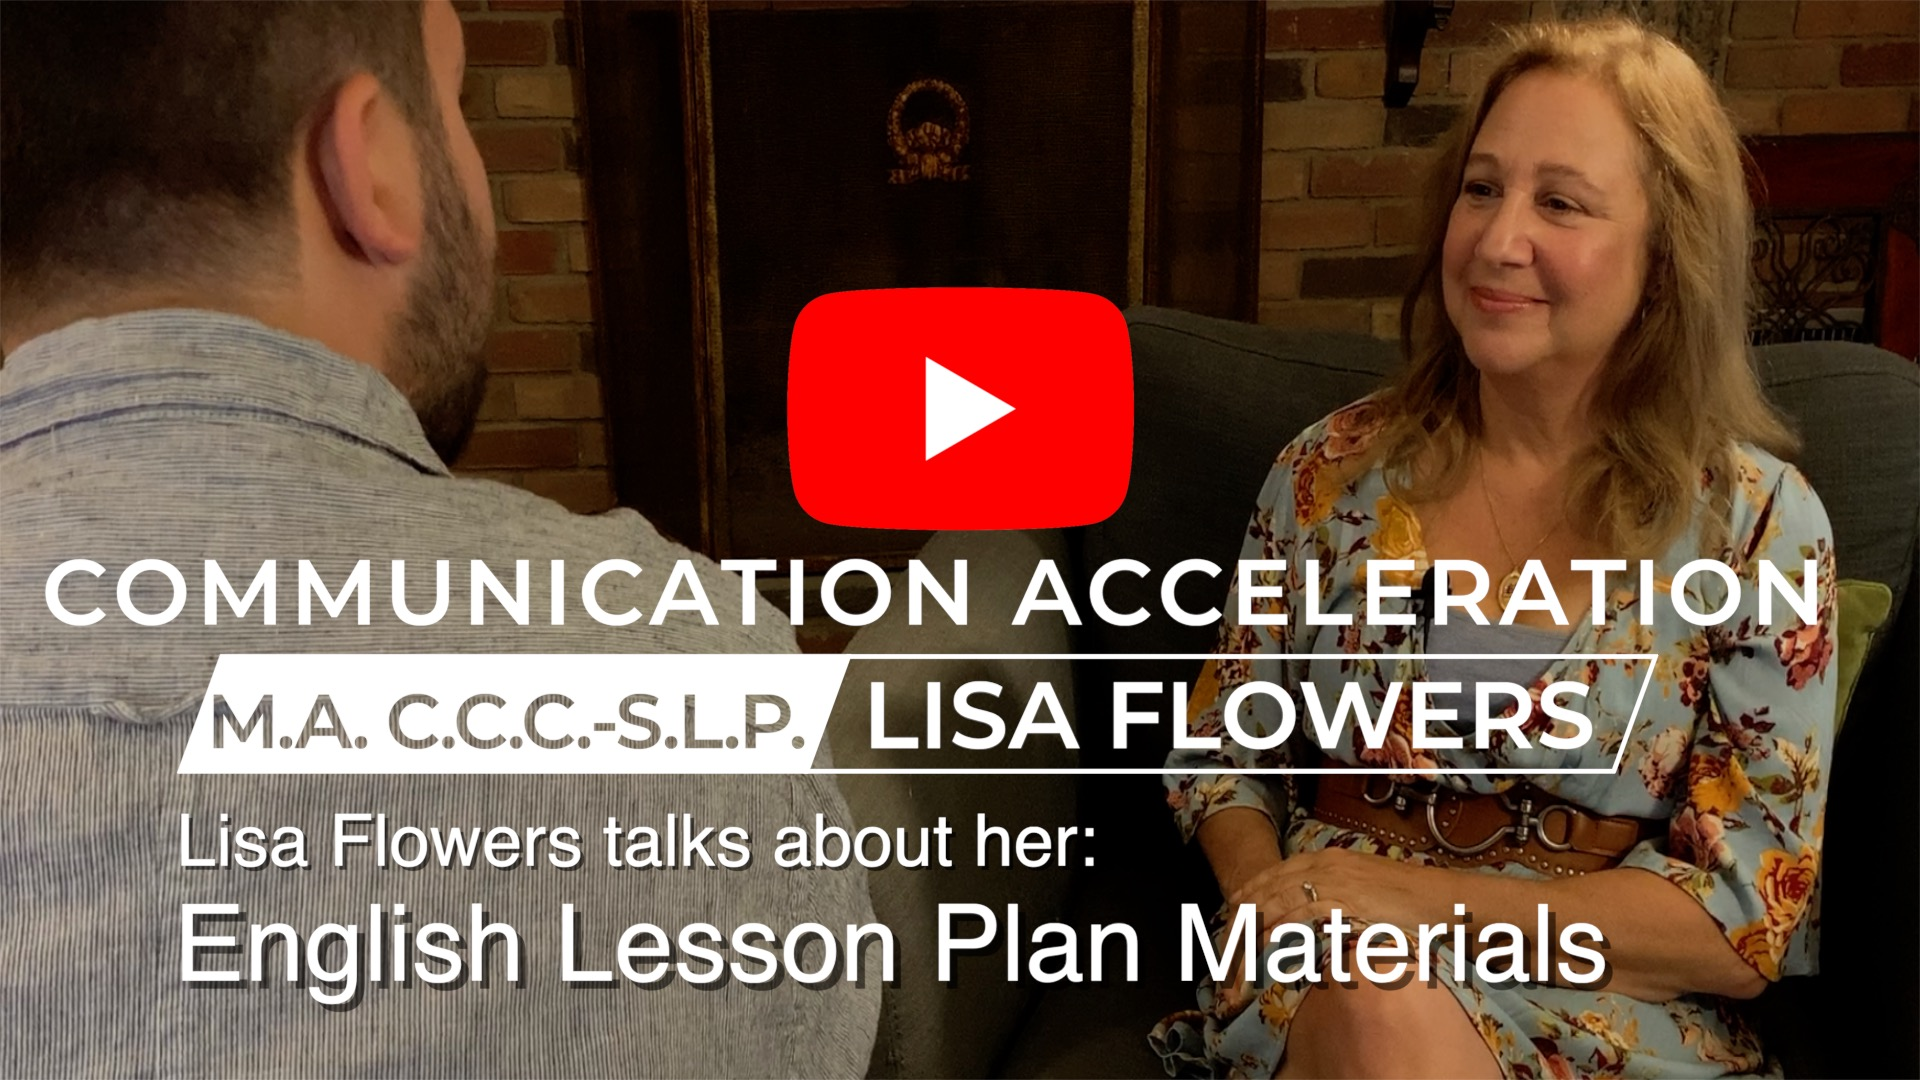 Lisa Flowers talks about her English Lesson Plan Materials for High School